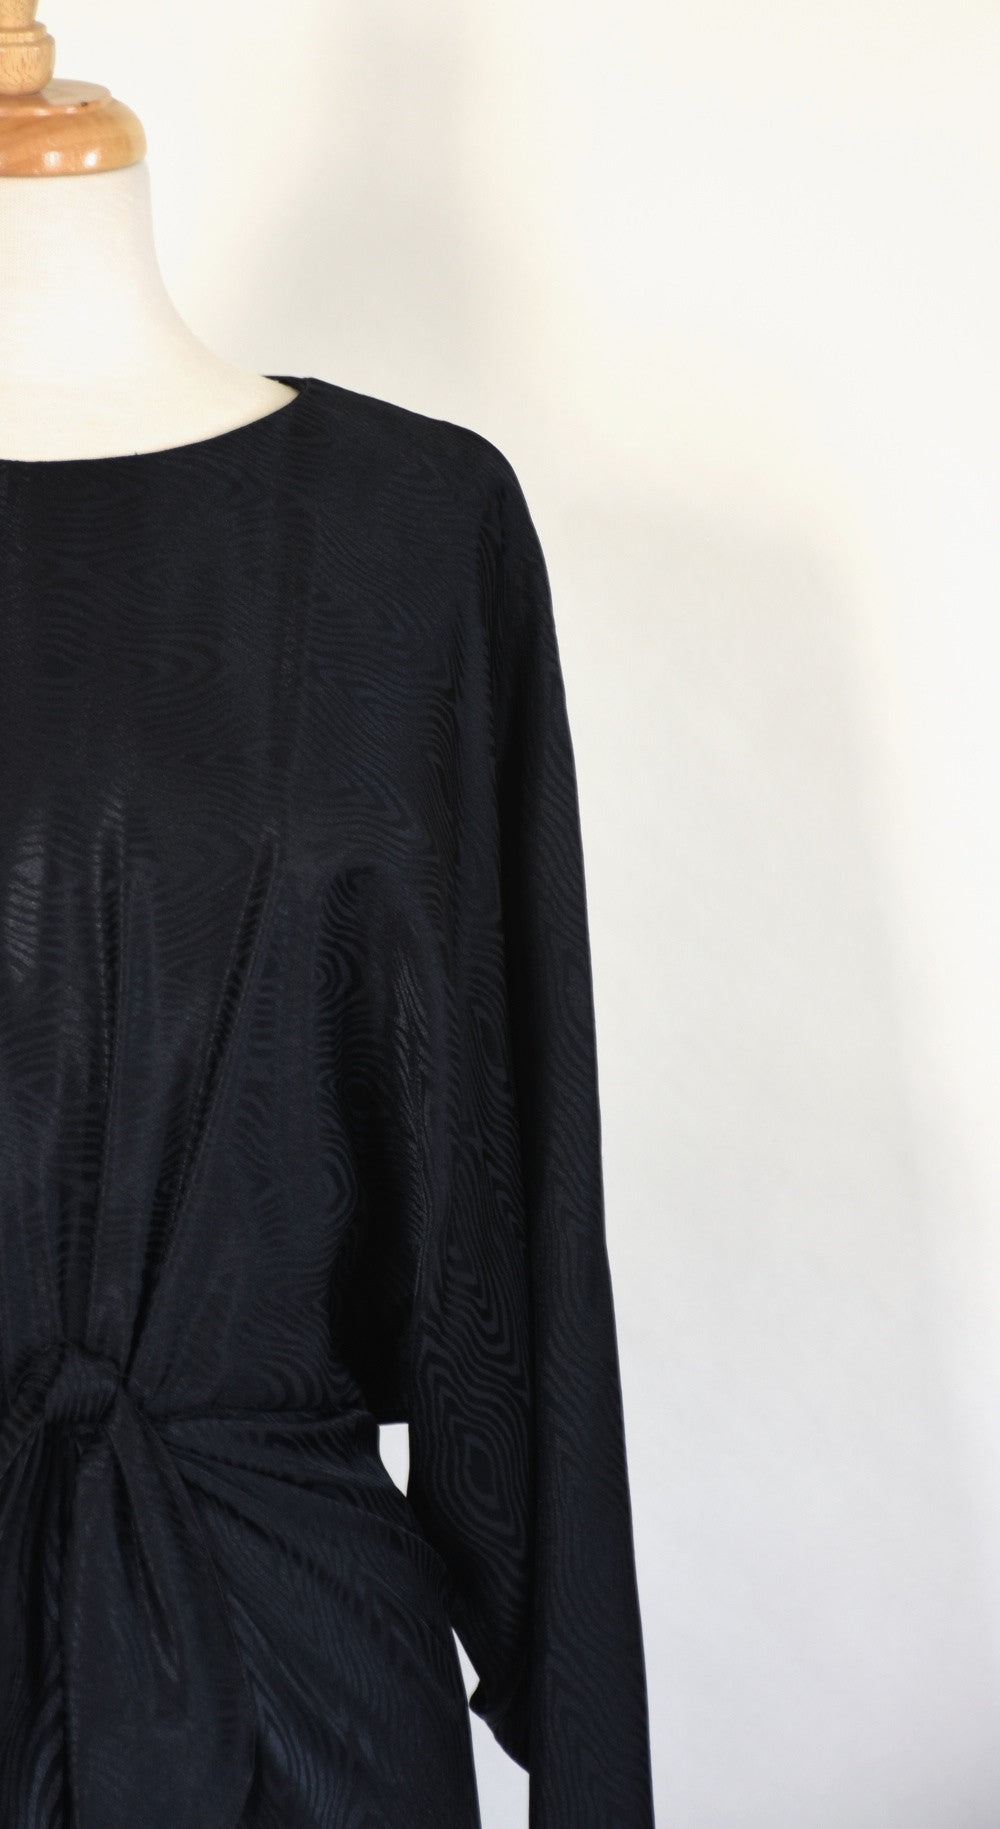 80s 90s Black Dolman Sleeve Dress